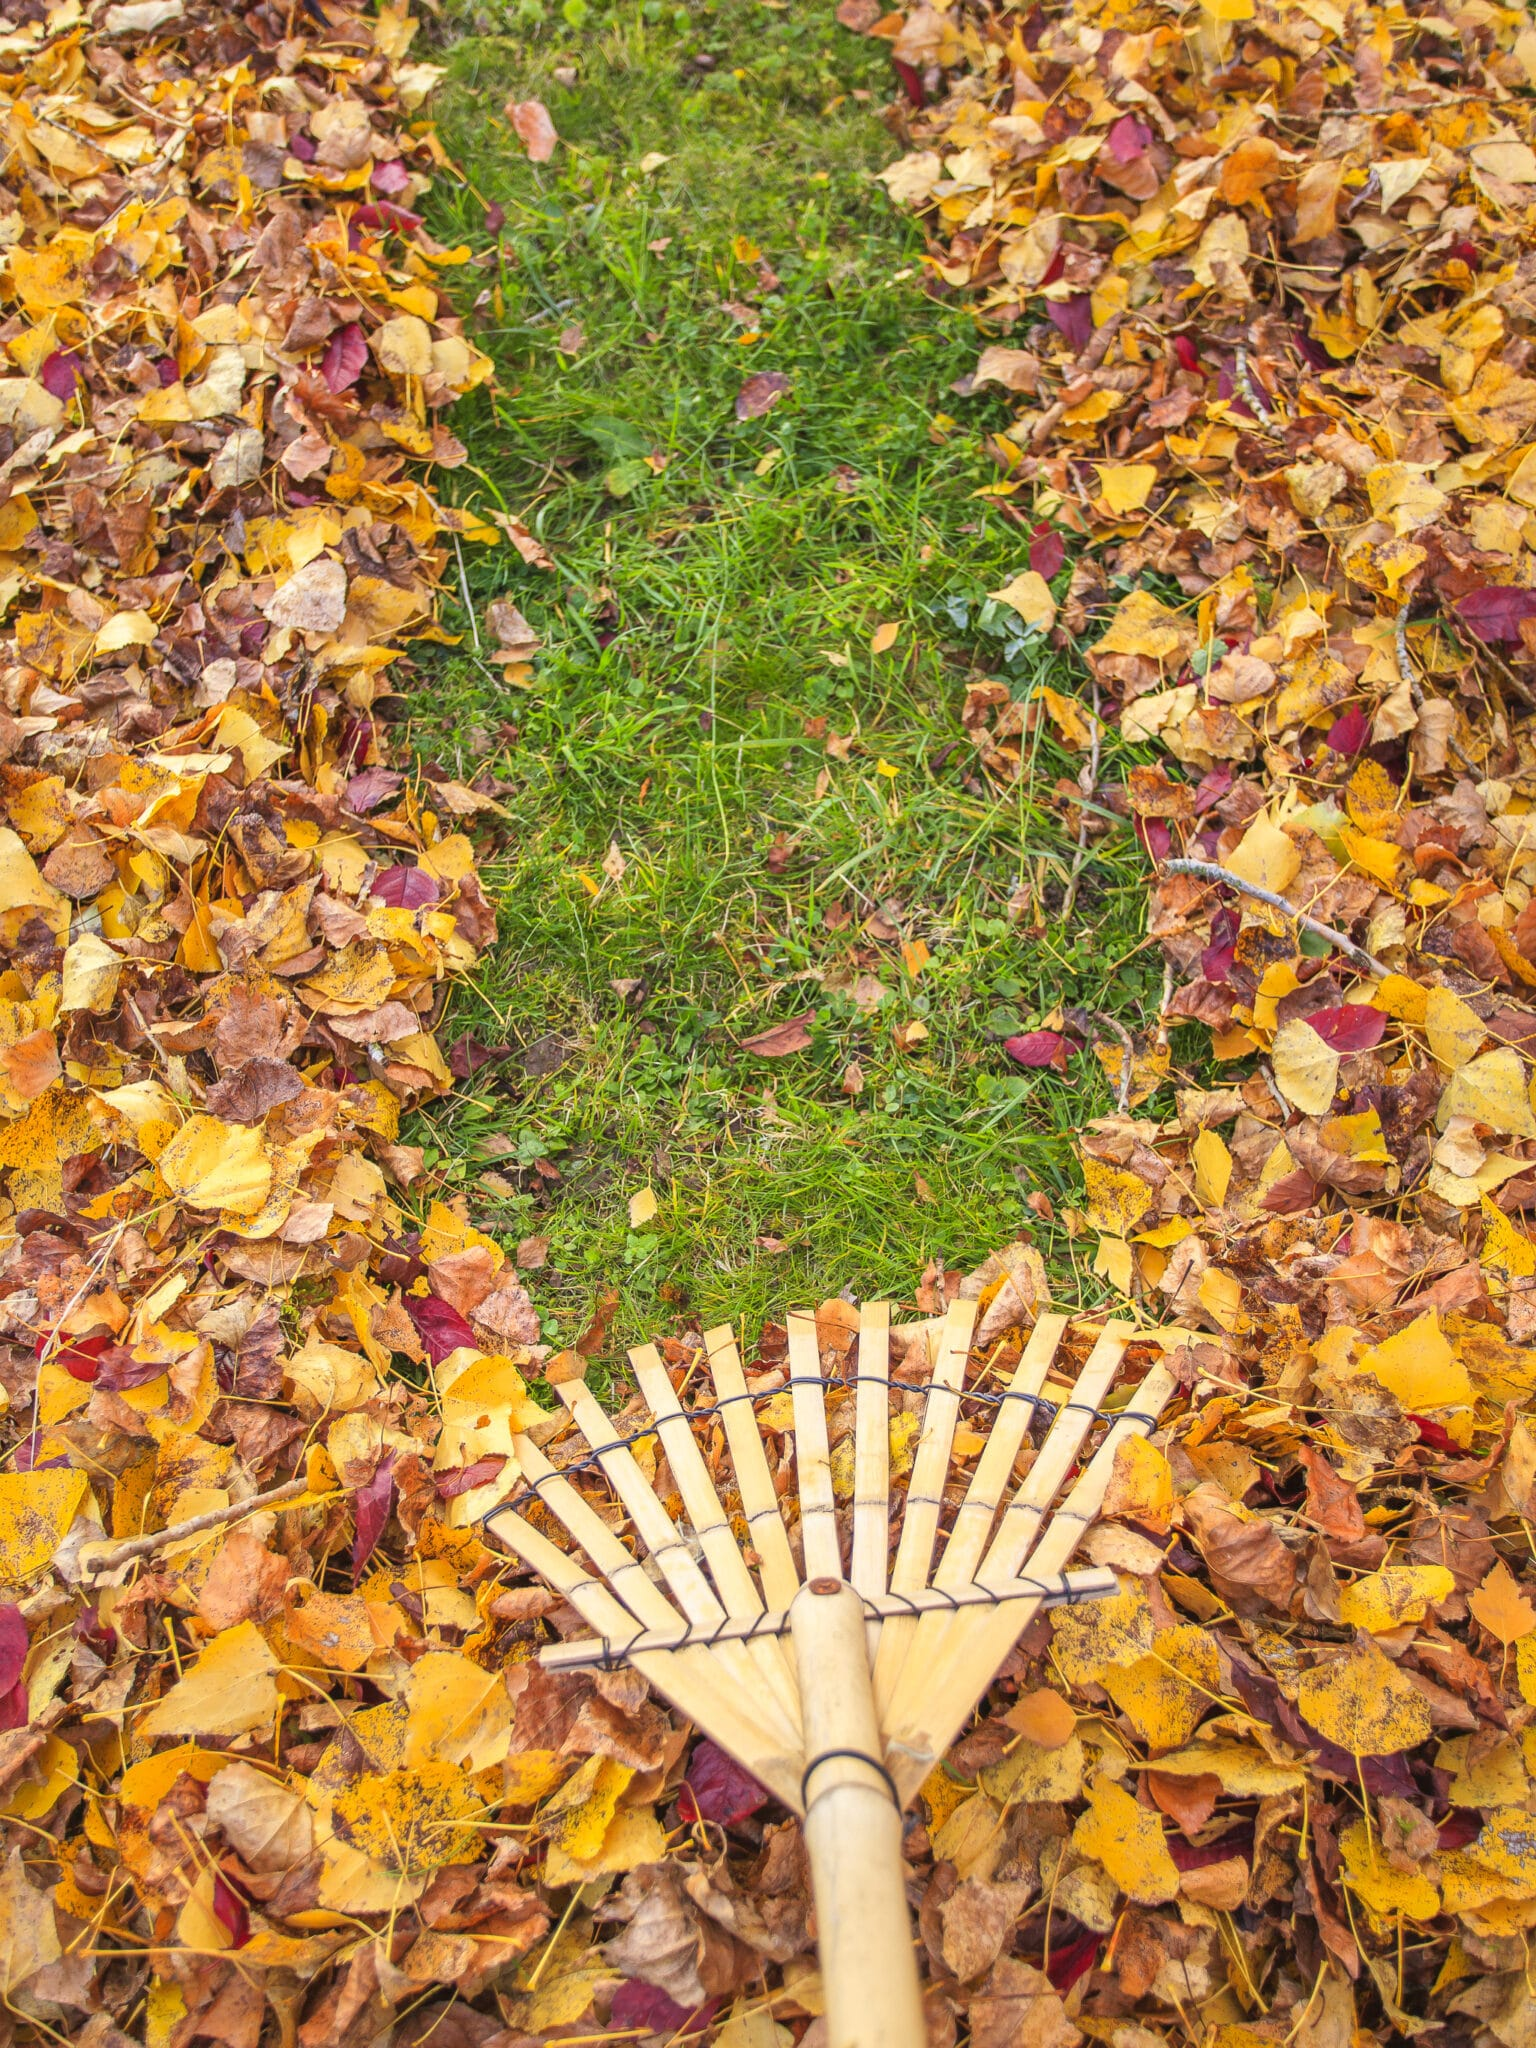 A rake pulling dead leaves for spring cleanup.